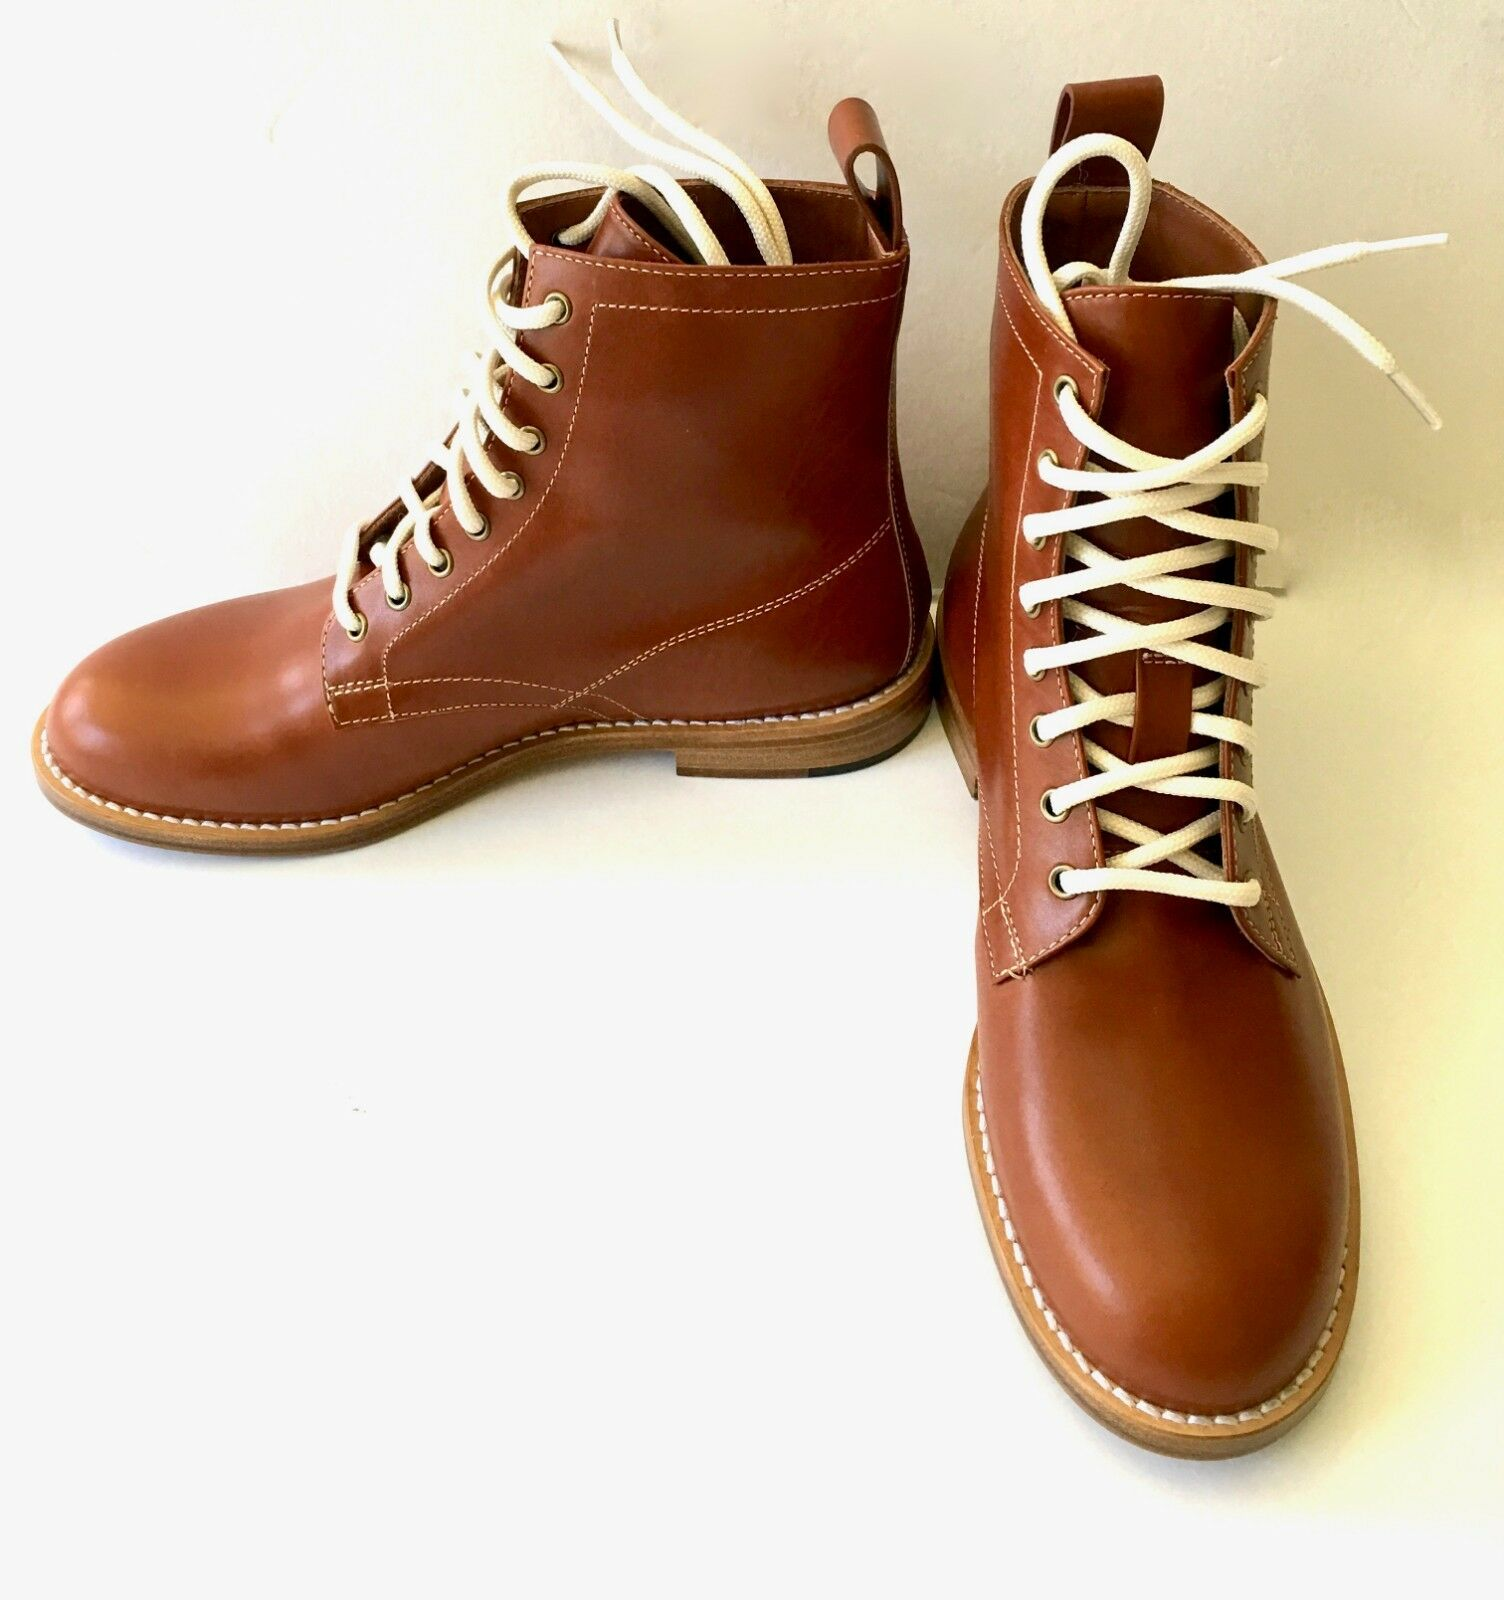 NEW  565 JENNI KAYNE LEATHER WORK BOOTS 37 7 DESIGNER BROWN LACE UP HIKING ITALY